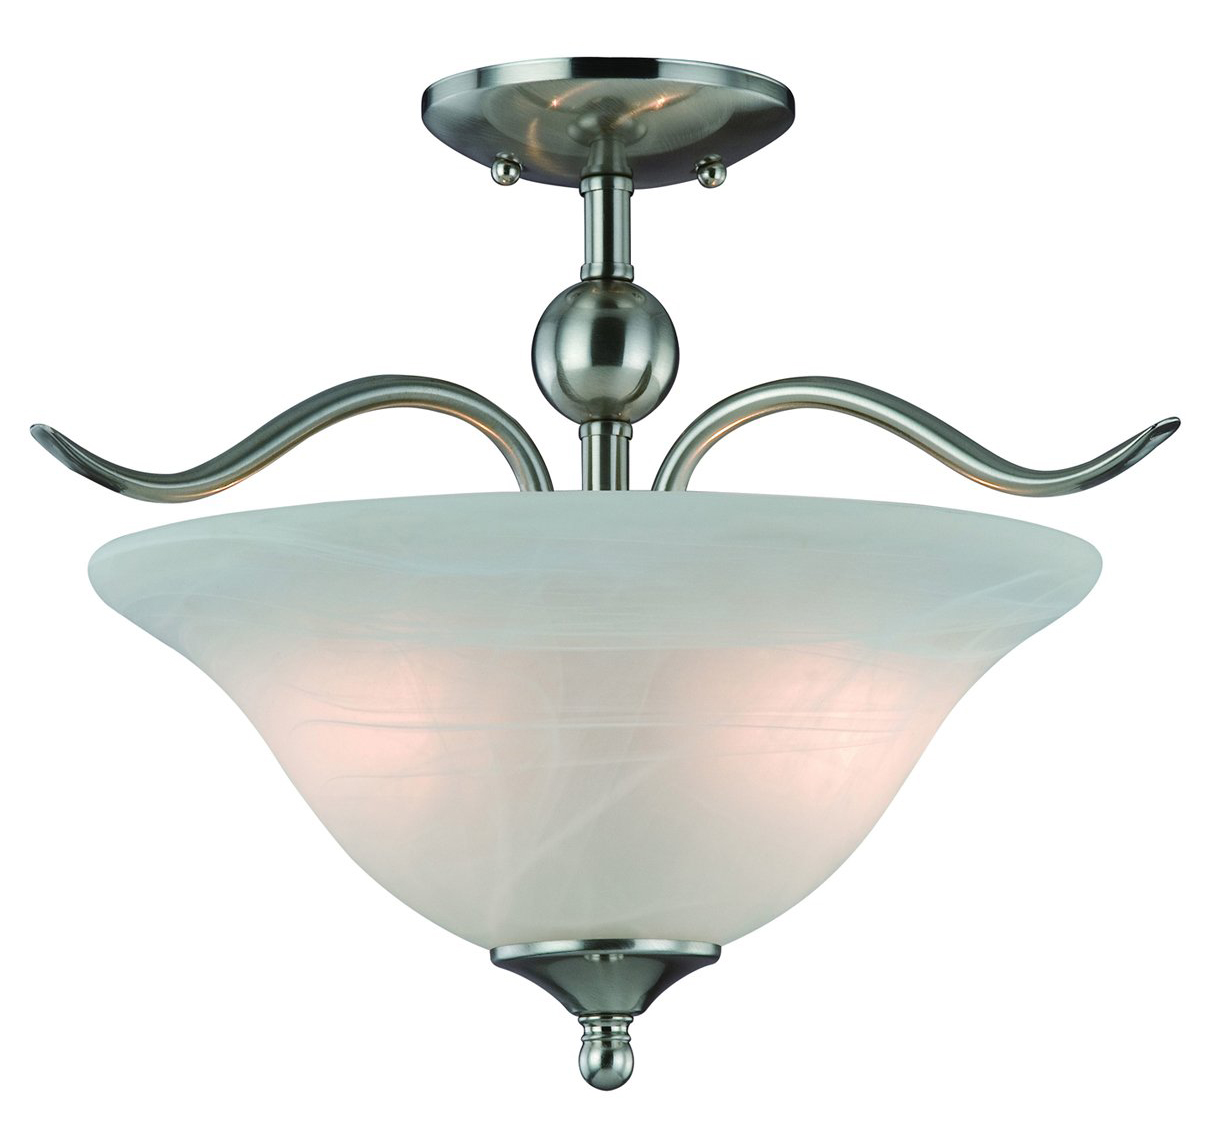 10-4289 Satin Nickel 2-Light Semiflush Light